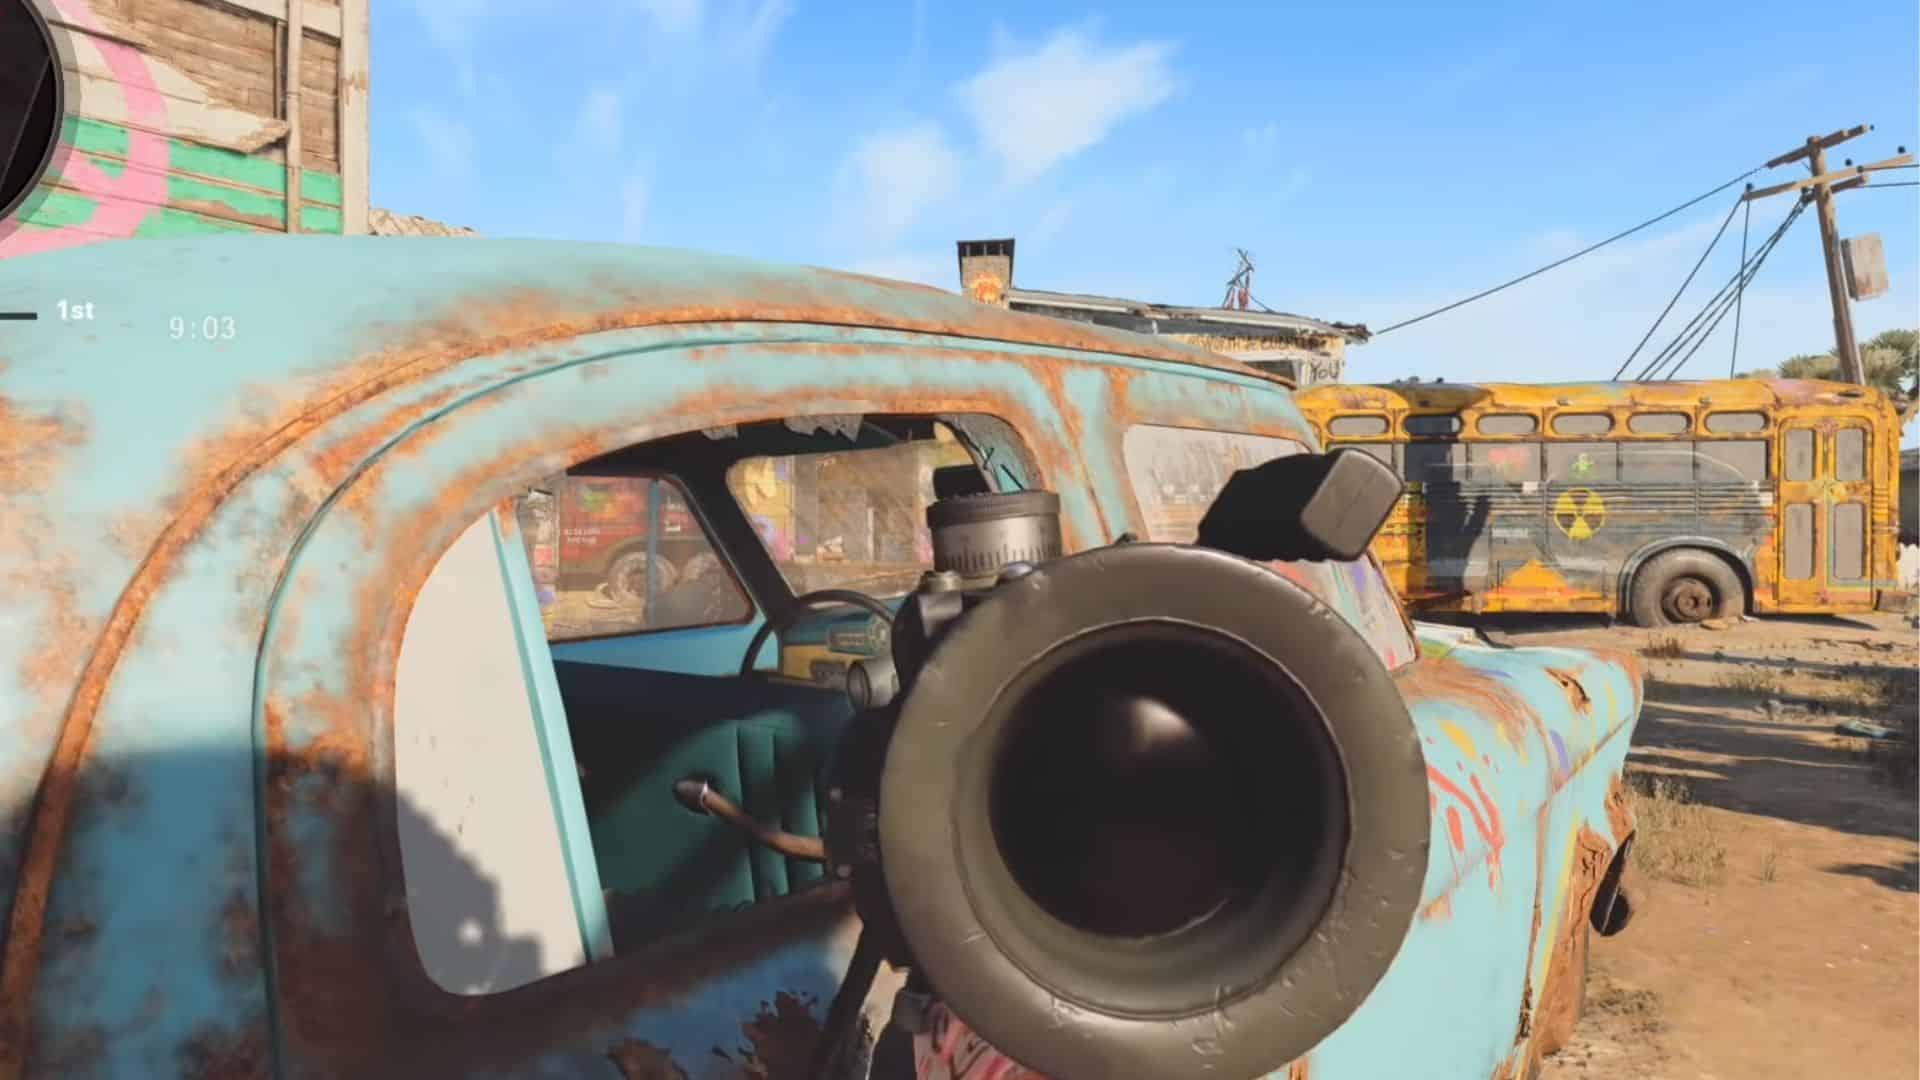 the blue car in nuketown 84 in bocw